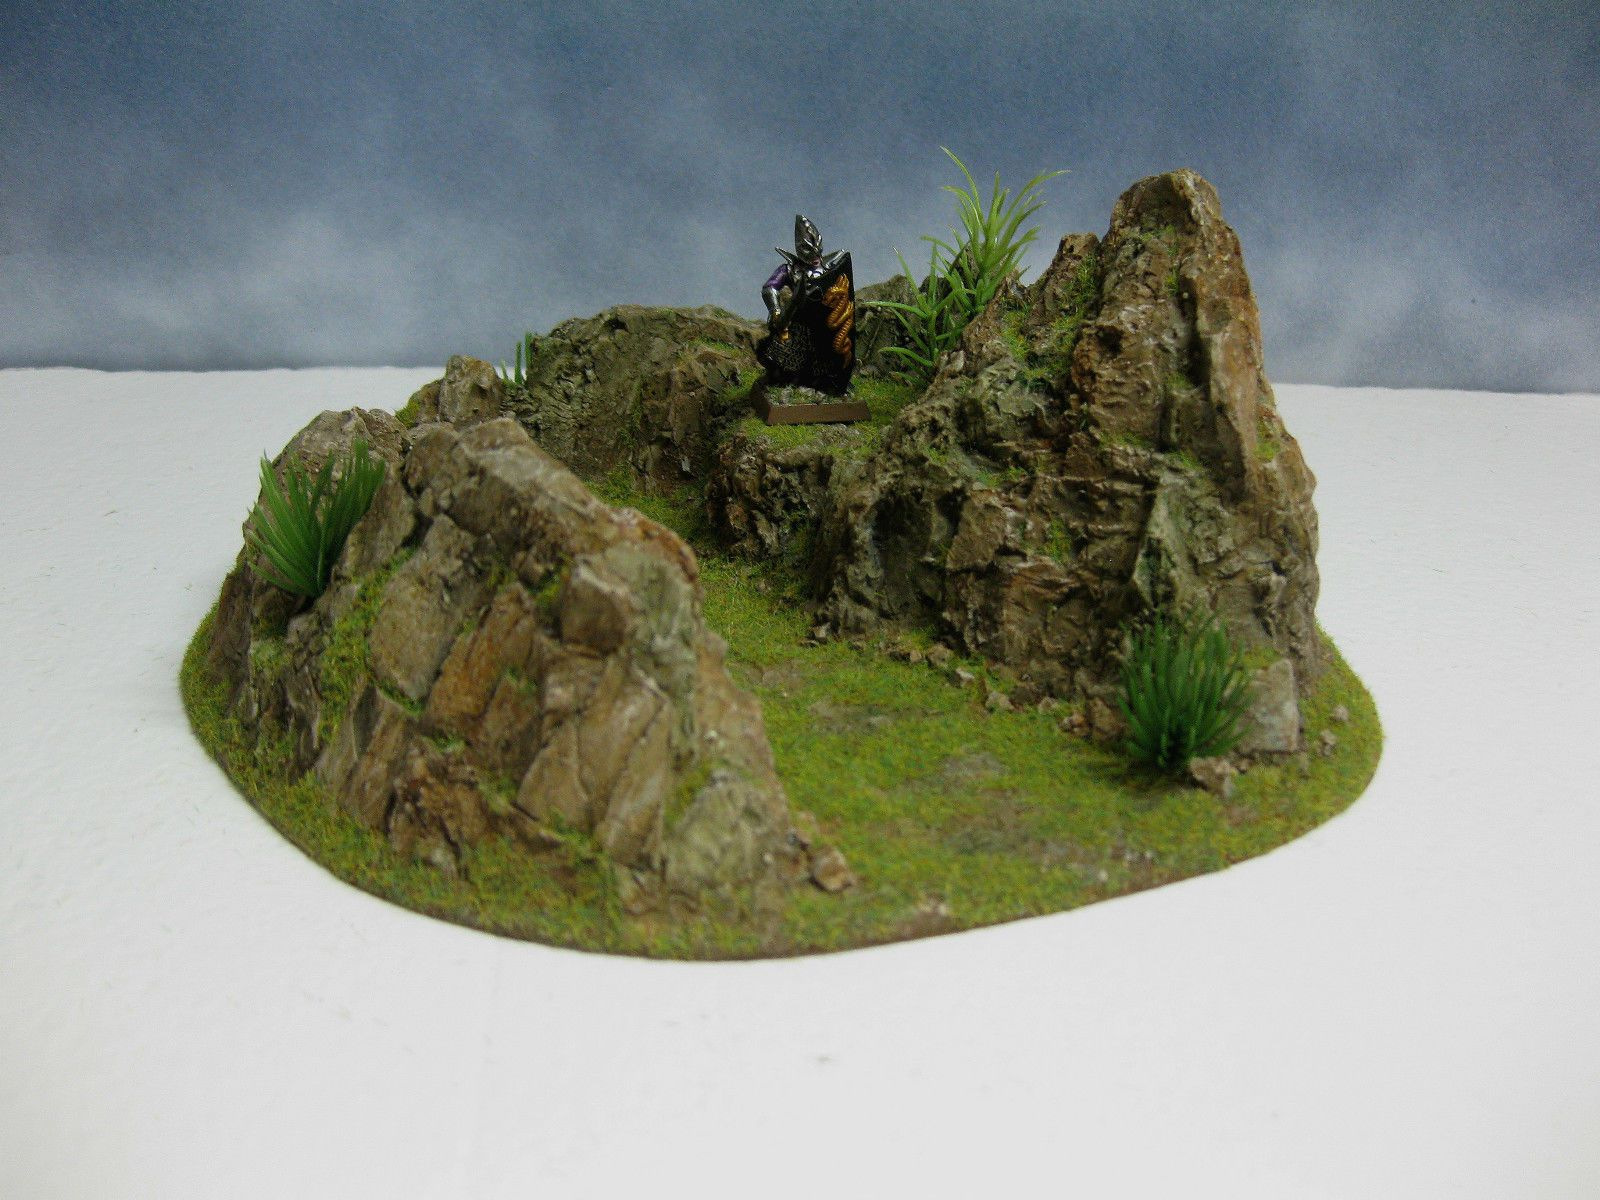 Terrain Scenery for Tabletop 28mm Miniatures Wargame 3D Printed and